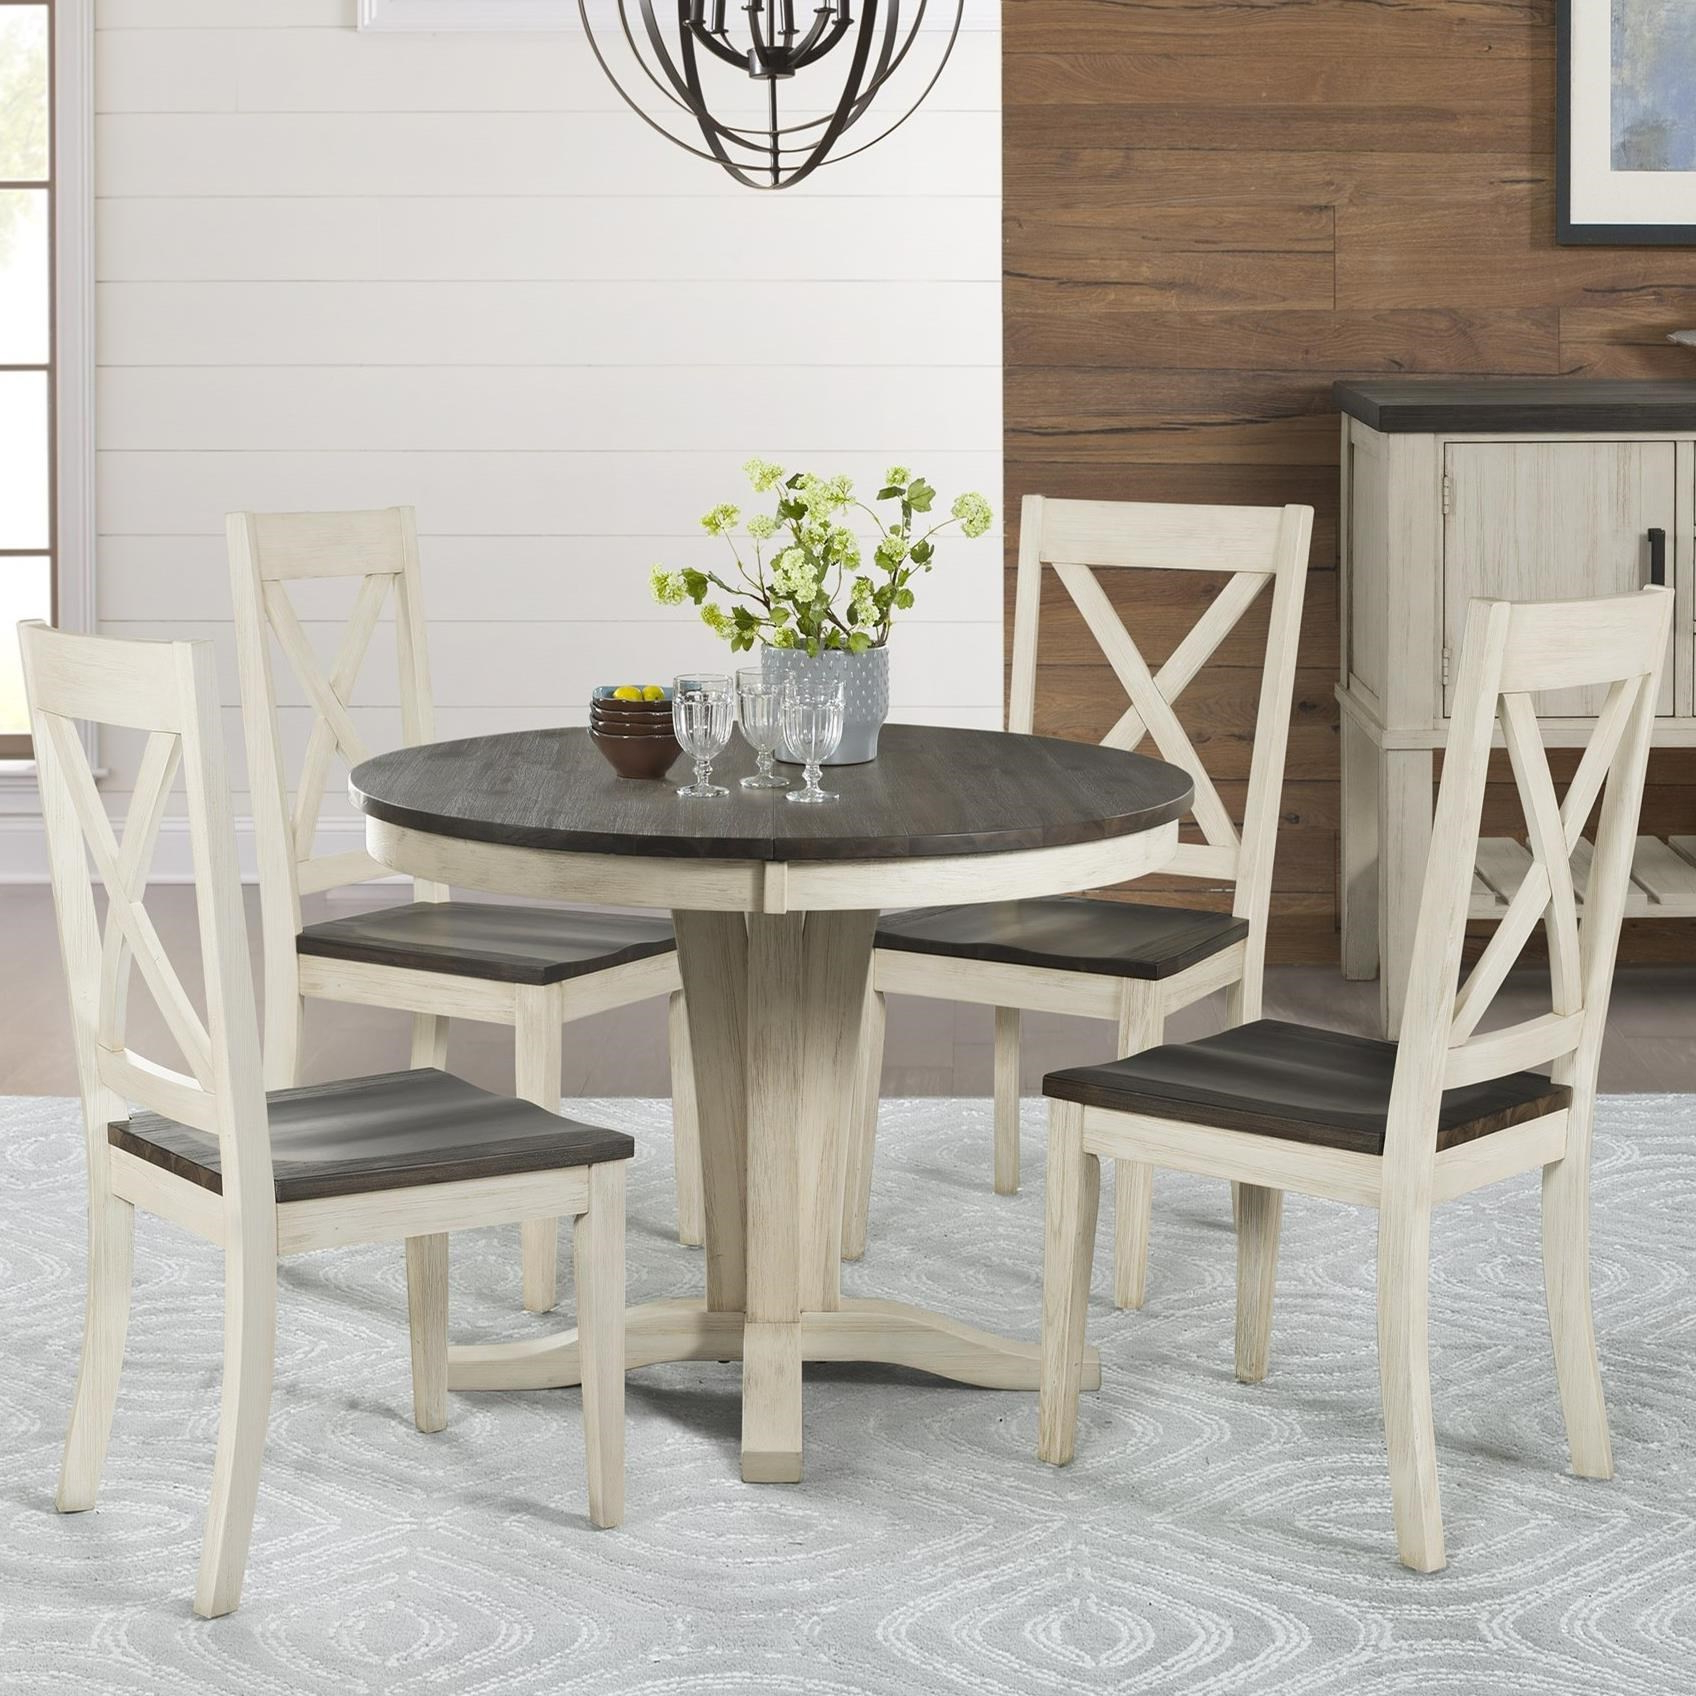 Transitional 4 Seating Drop Leaf Casual Dining Tables Inside Favorite Aamerica Huron 5 Piece Pedestal Table And X Back Chair Set (View 19 of 25)